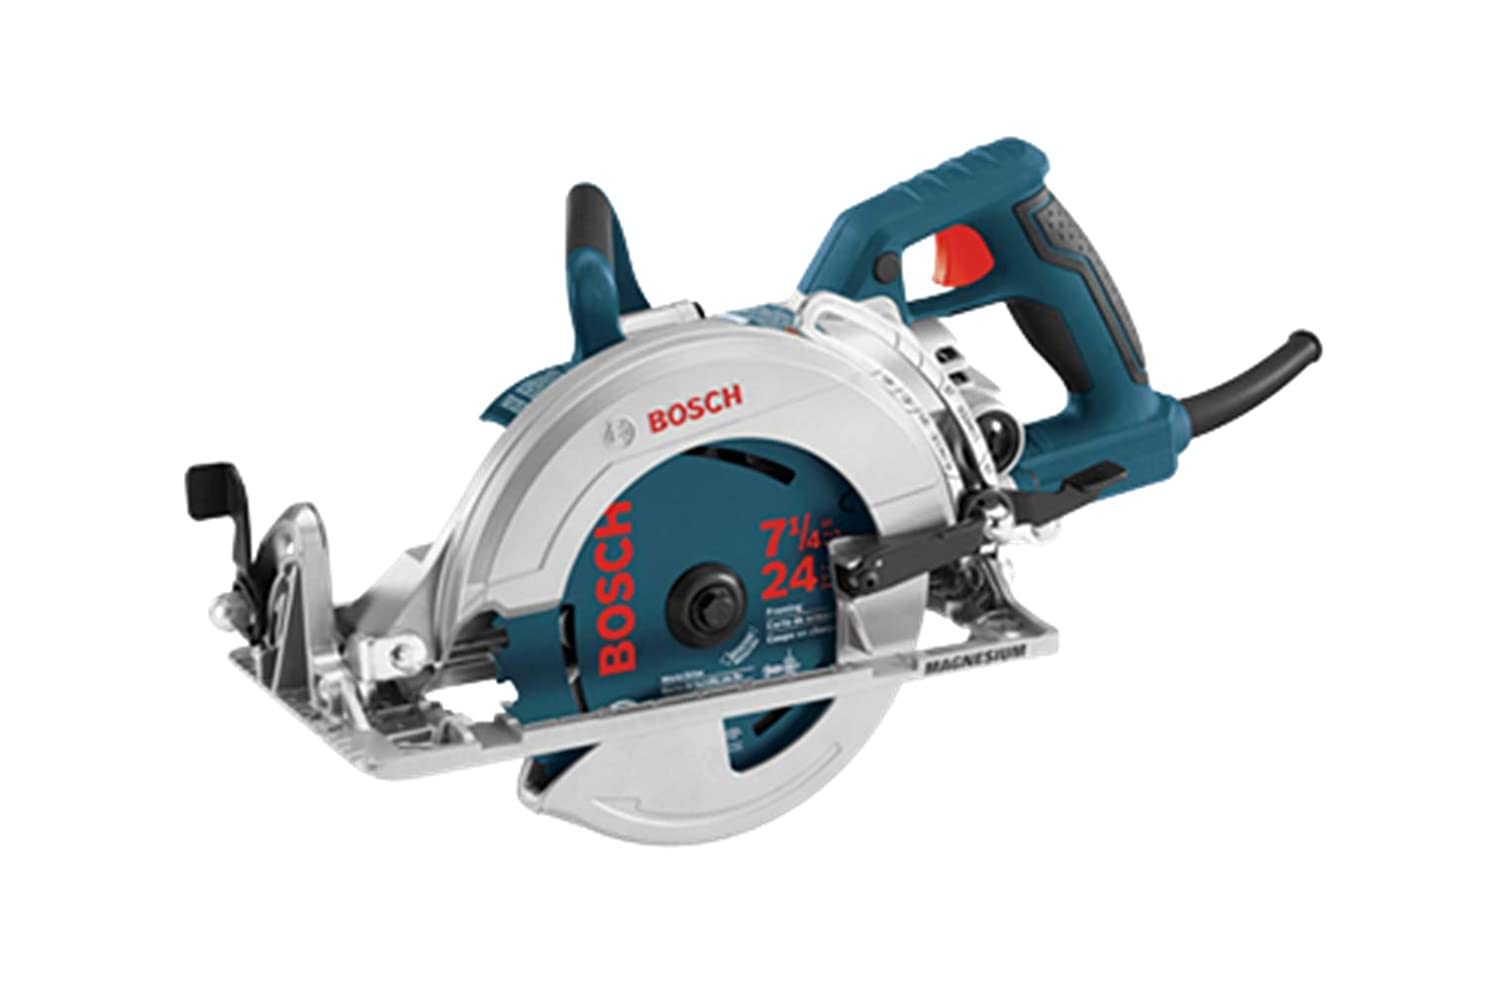 4. Bosch CSW41 Worm Drive Circular Saw